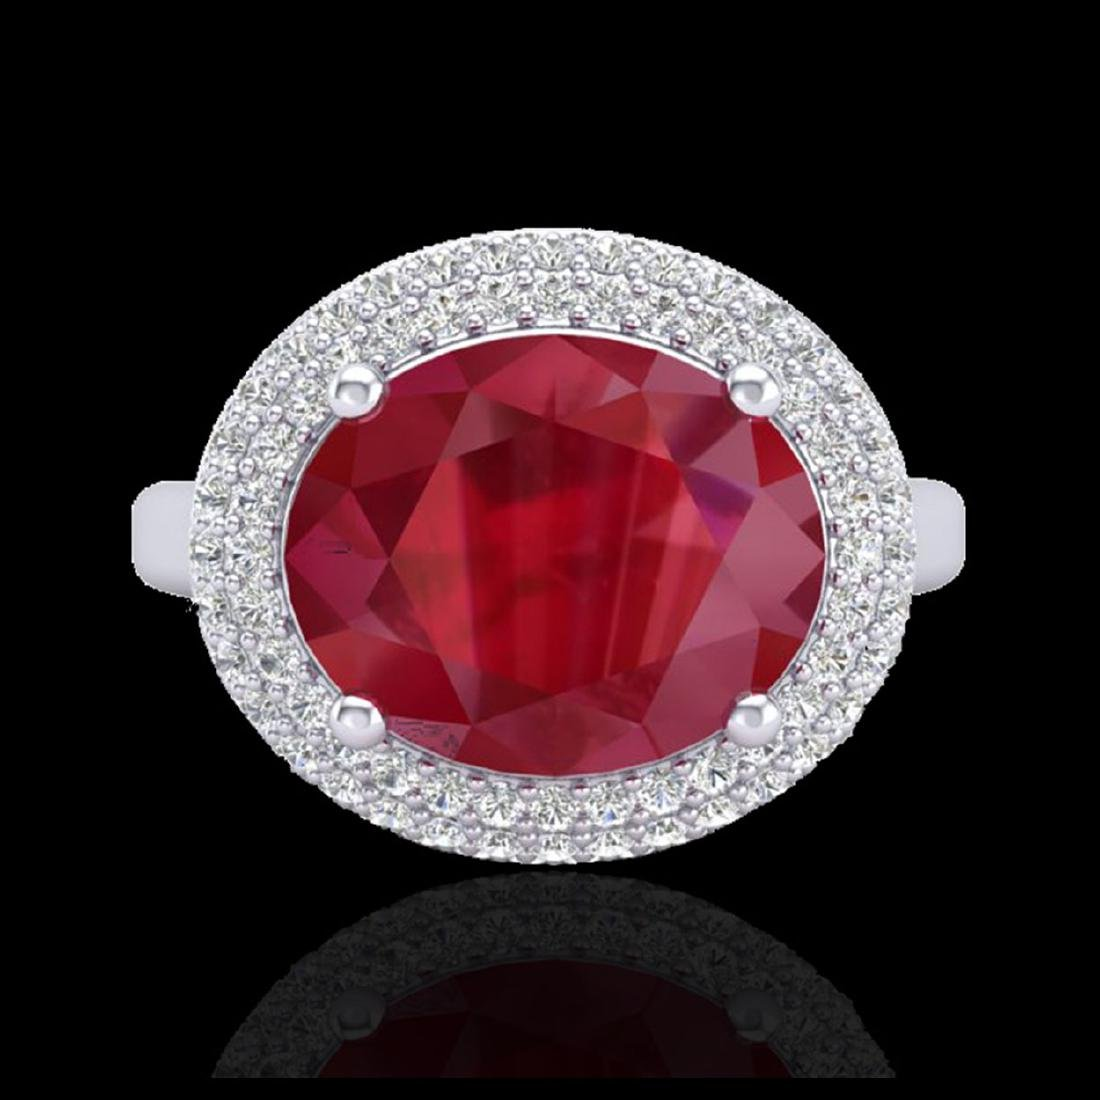 4.50 CTW Ruby & Micro Pave VS/SI Diamond Ring 18K White - 2